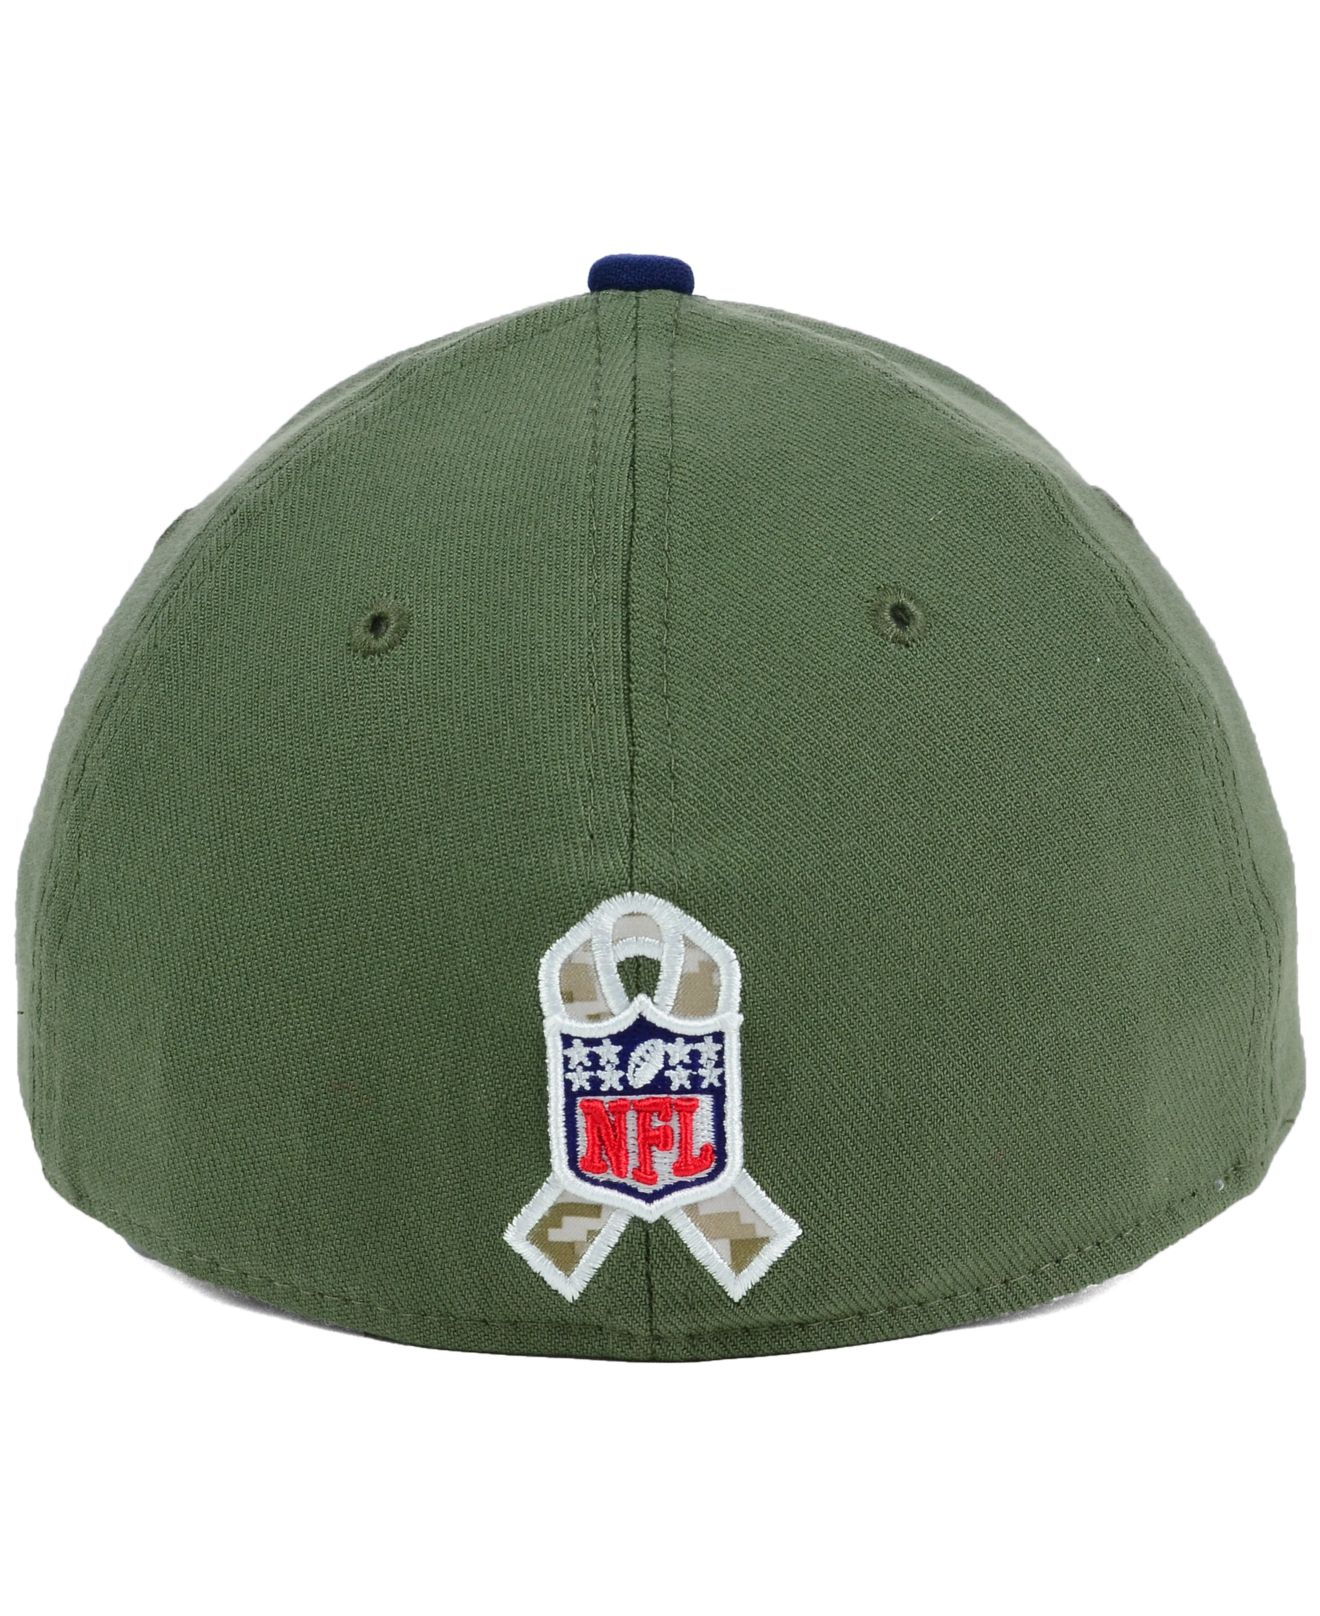 94d46b73320 Lyst - KTZ New England Patriots Salute To Service 39thirty Cap in ...